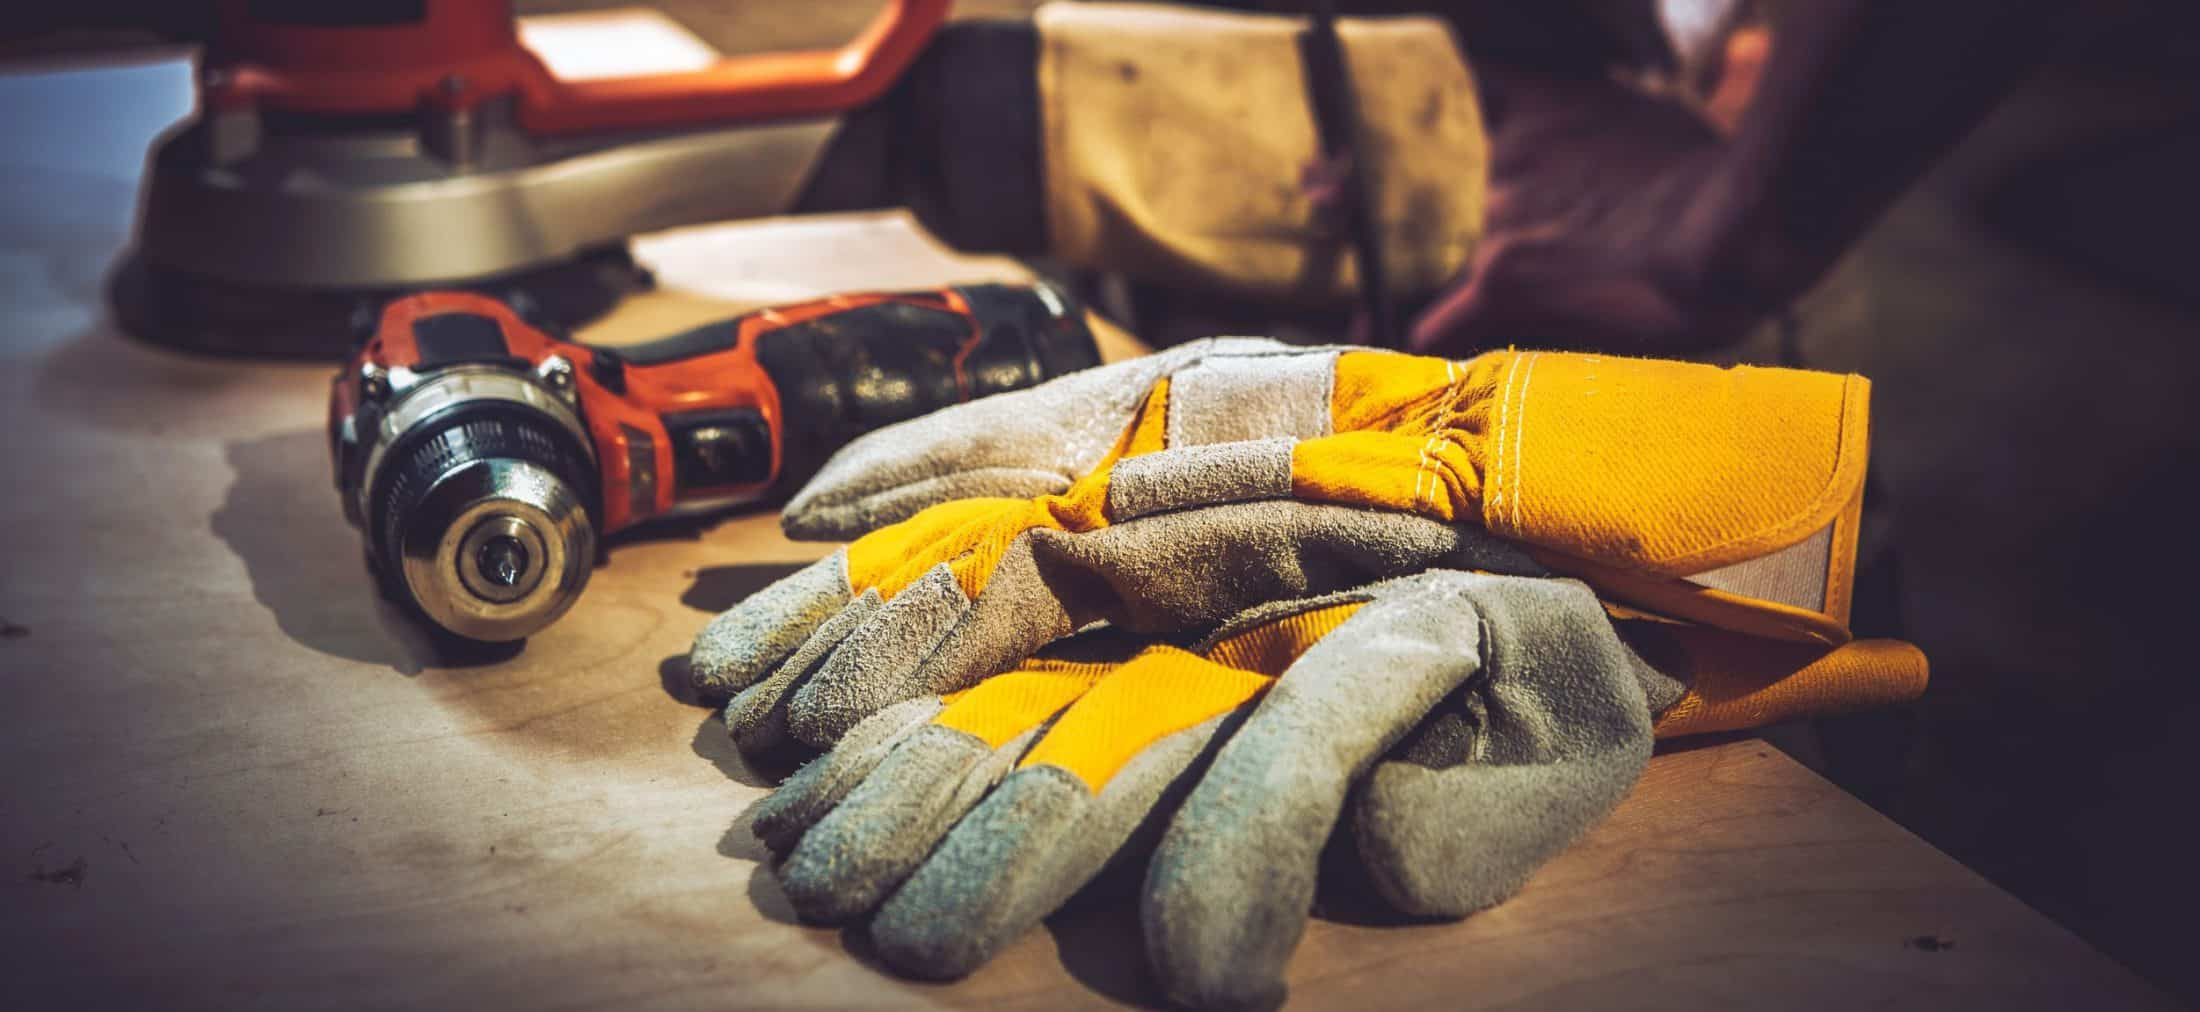 Construction tools and safety gloves